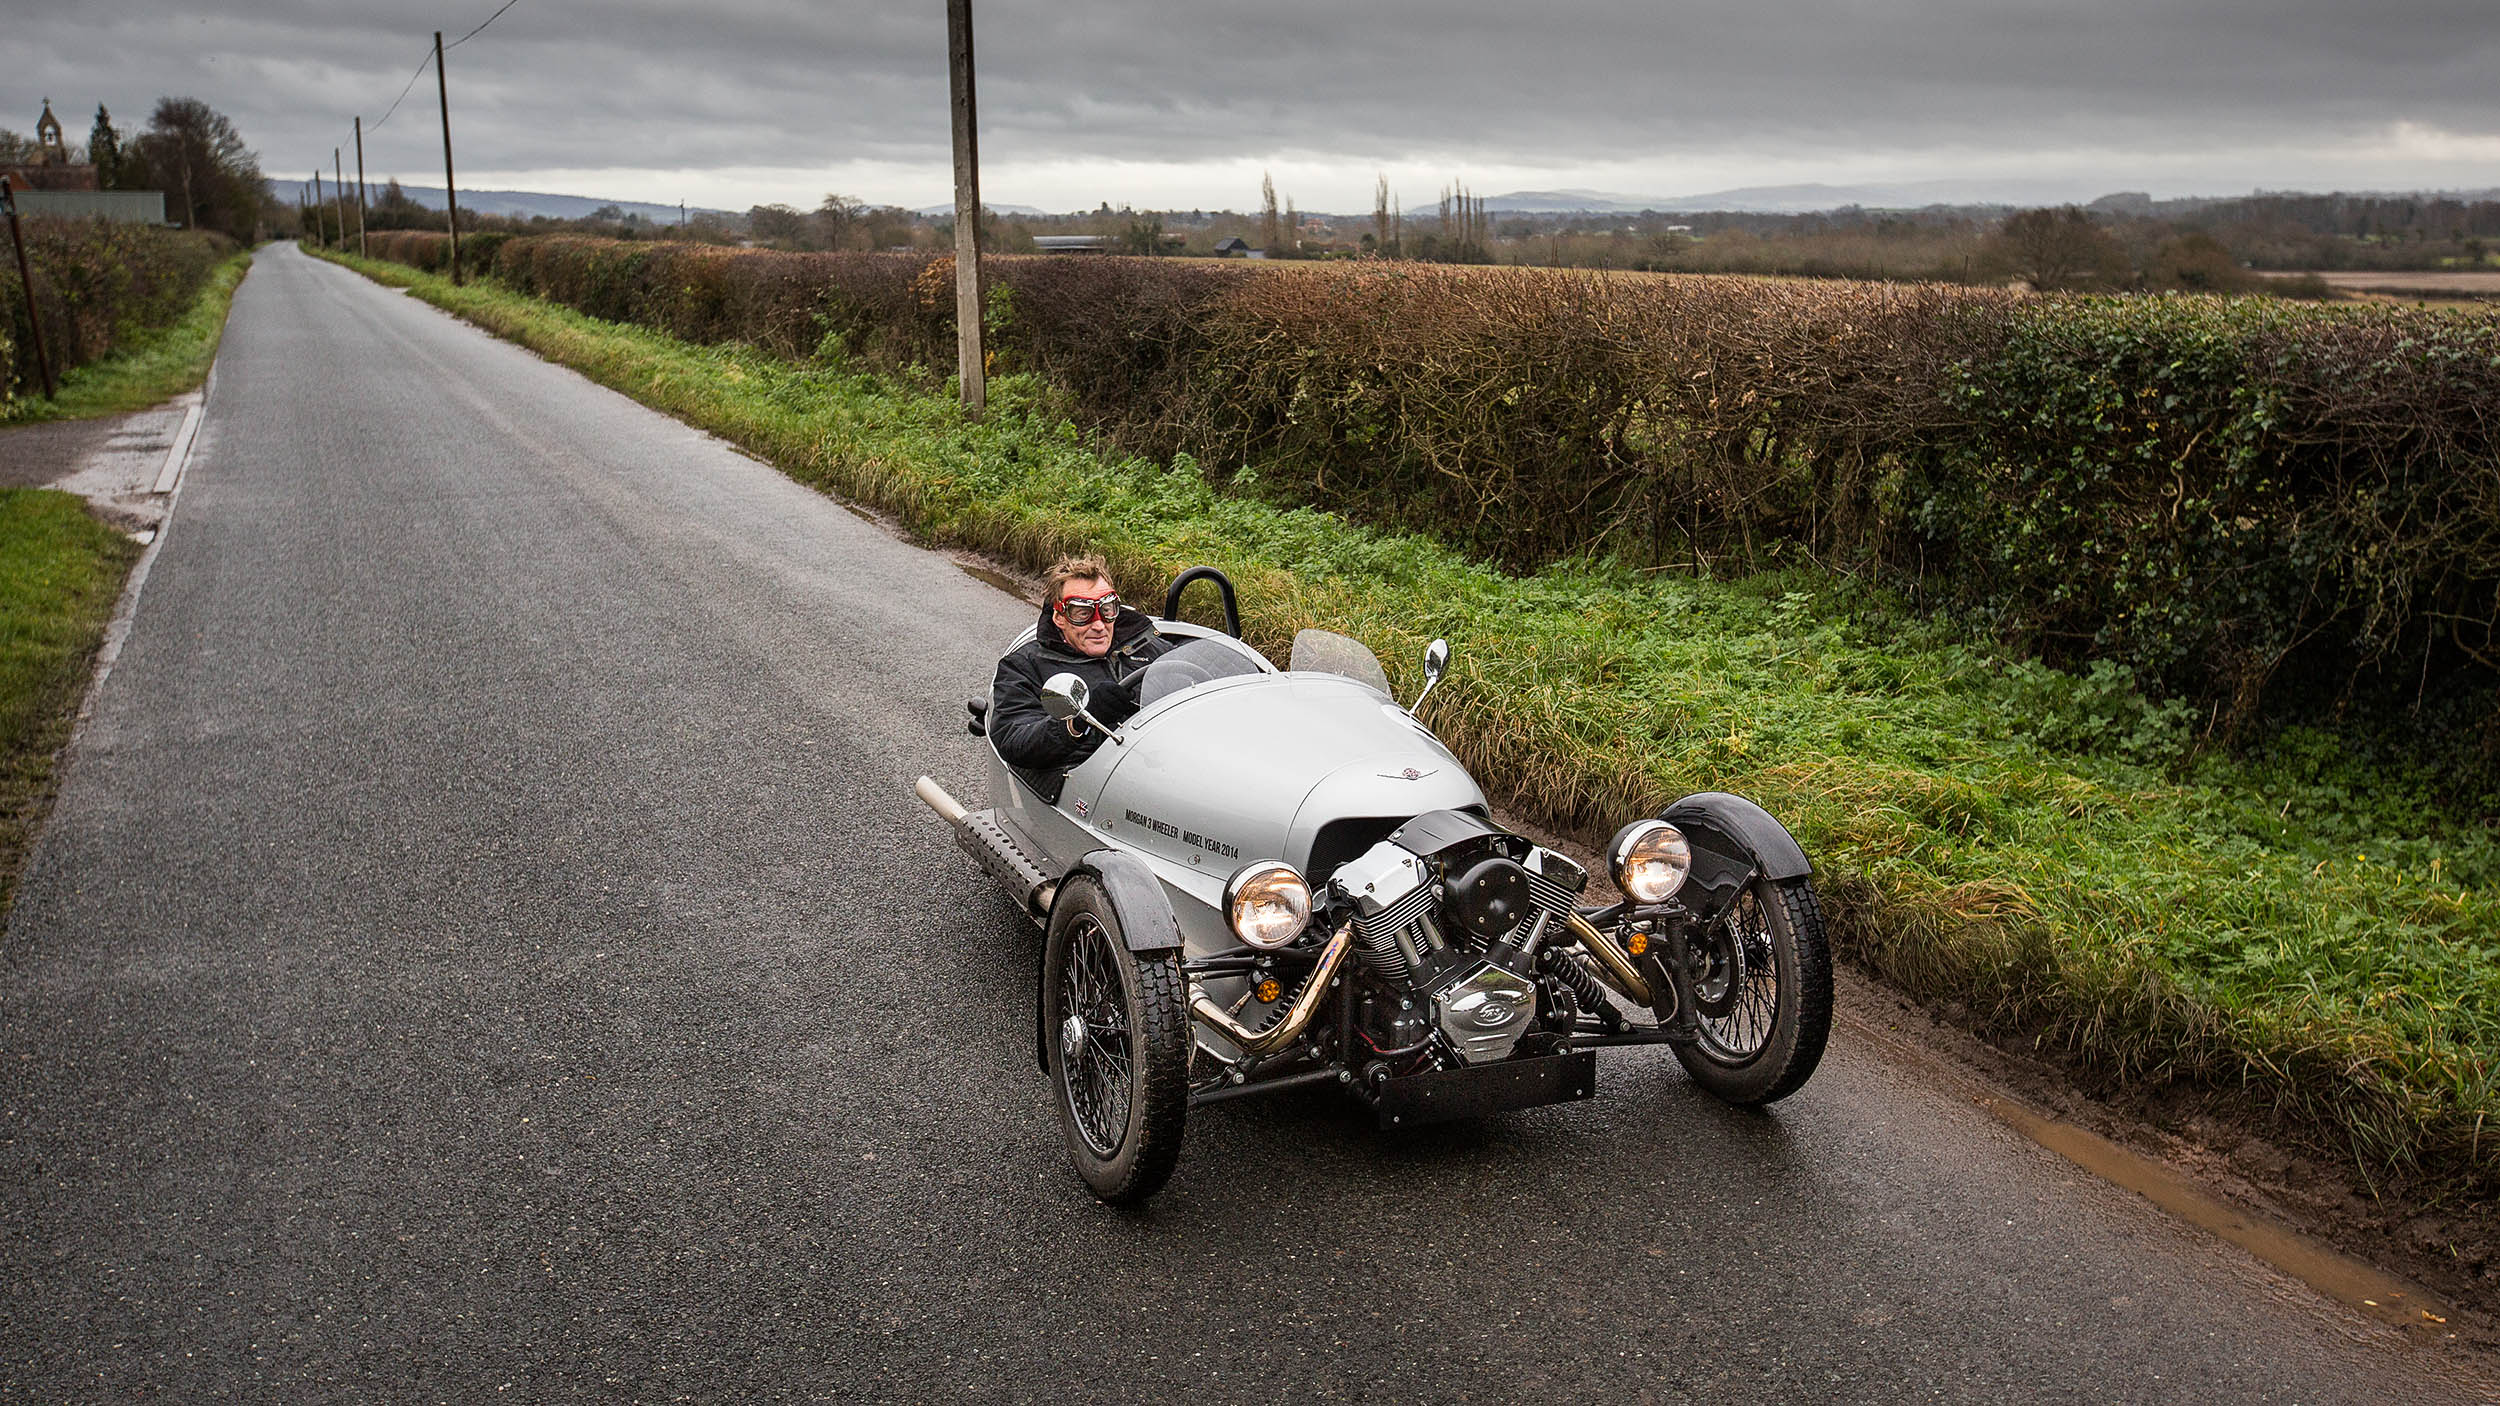 A Morgan 3 Wheeler in the company's home town of Malvern, Worcestershire